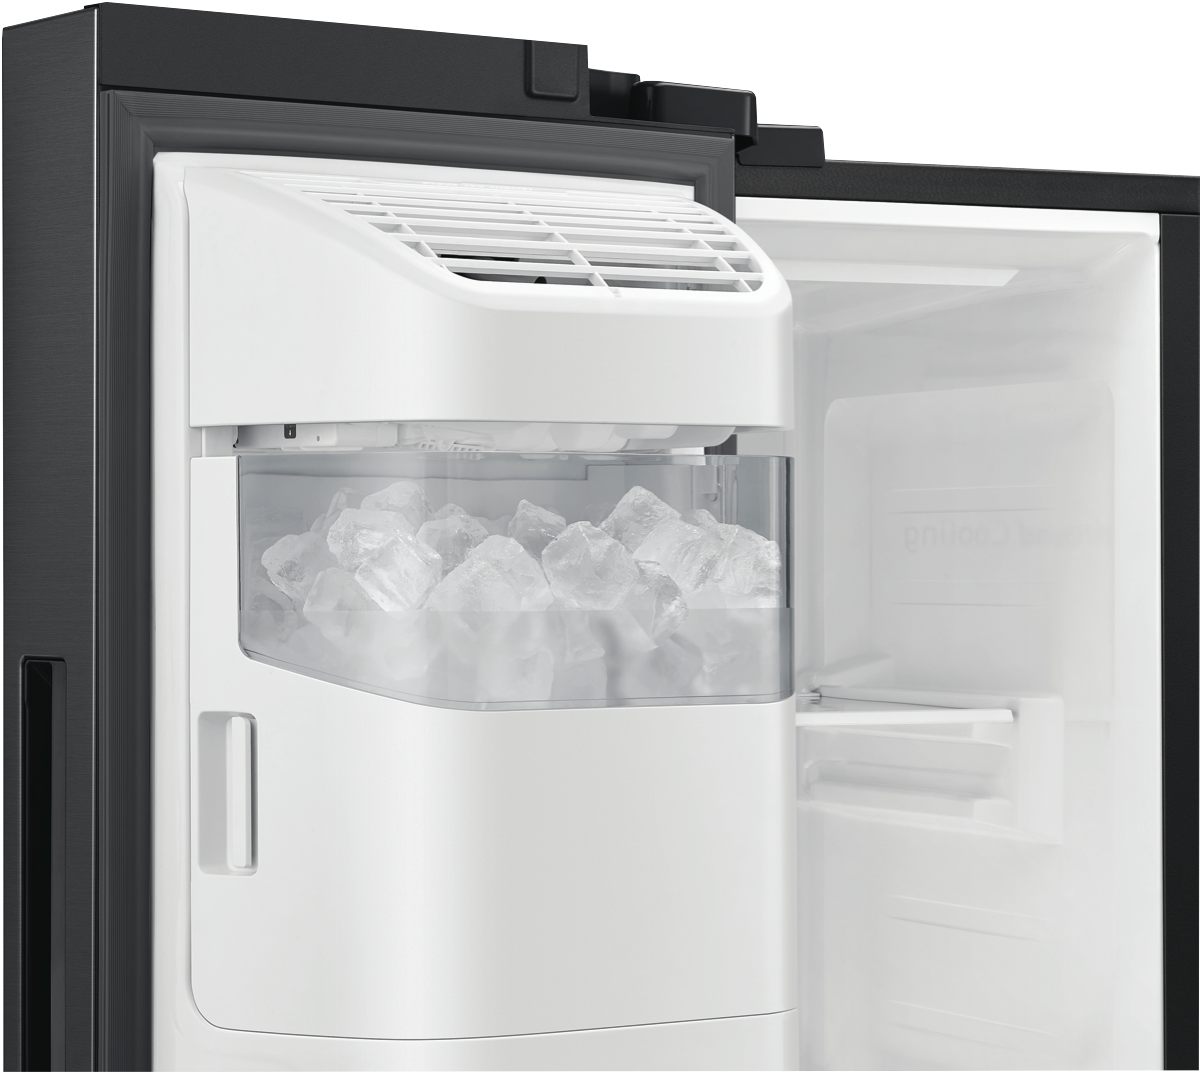 Samsung Srs673dmb 676l Side By Side Refrigerator At The